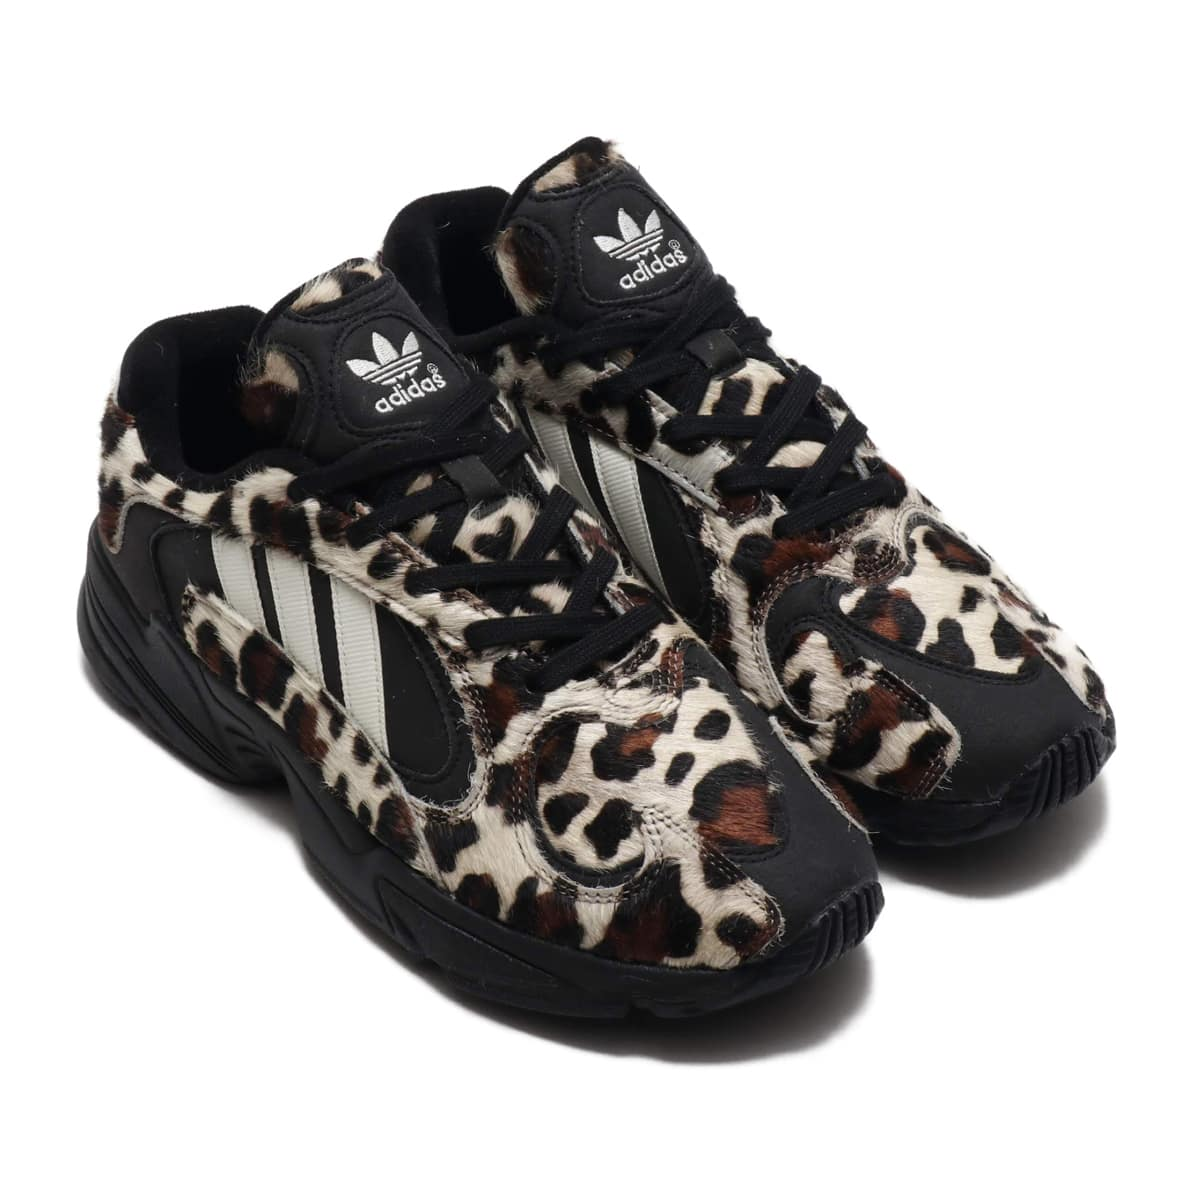 adidas YUNG-1 CORE BLACK/OFF WHITE/SIMPLE BROWN 20SS-I_photo_large